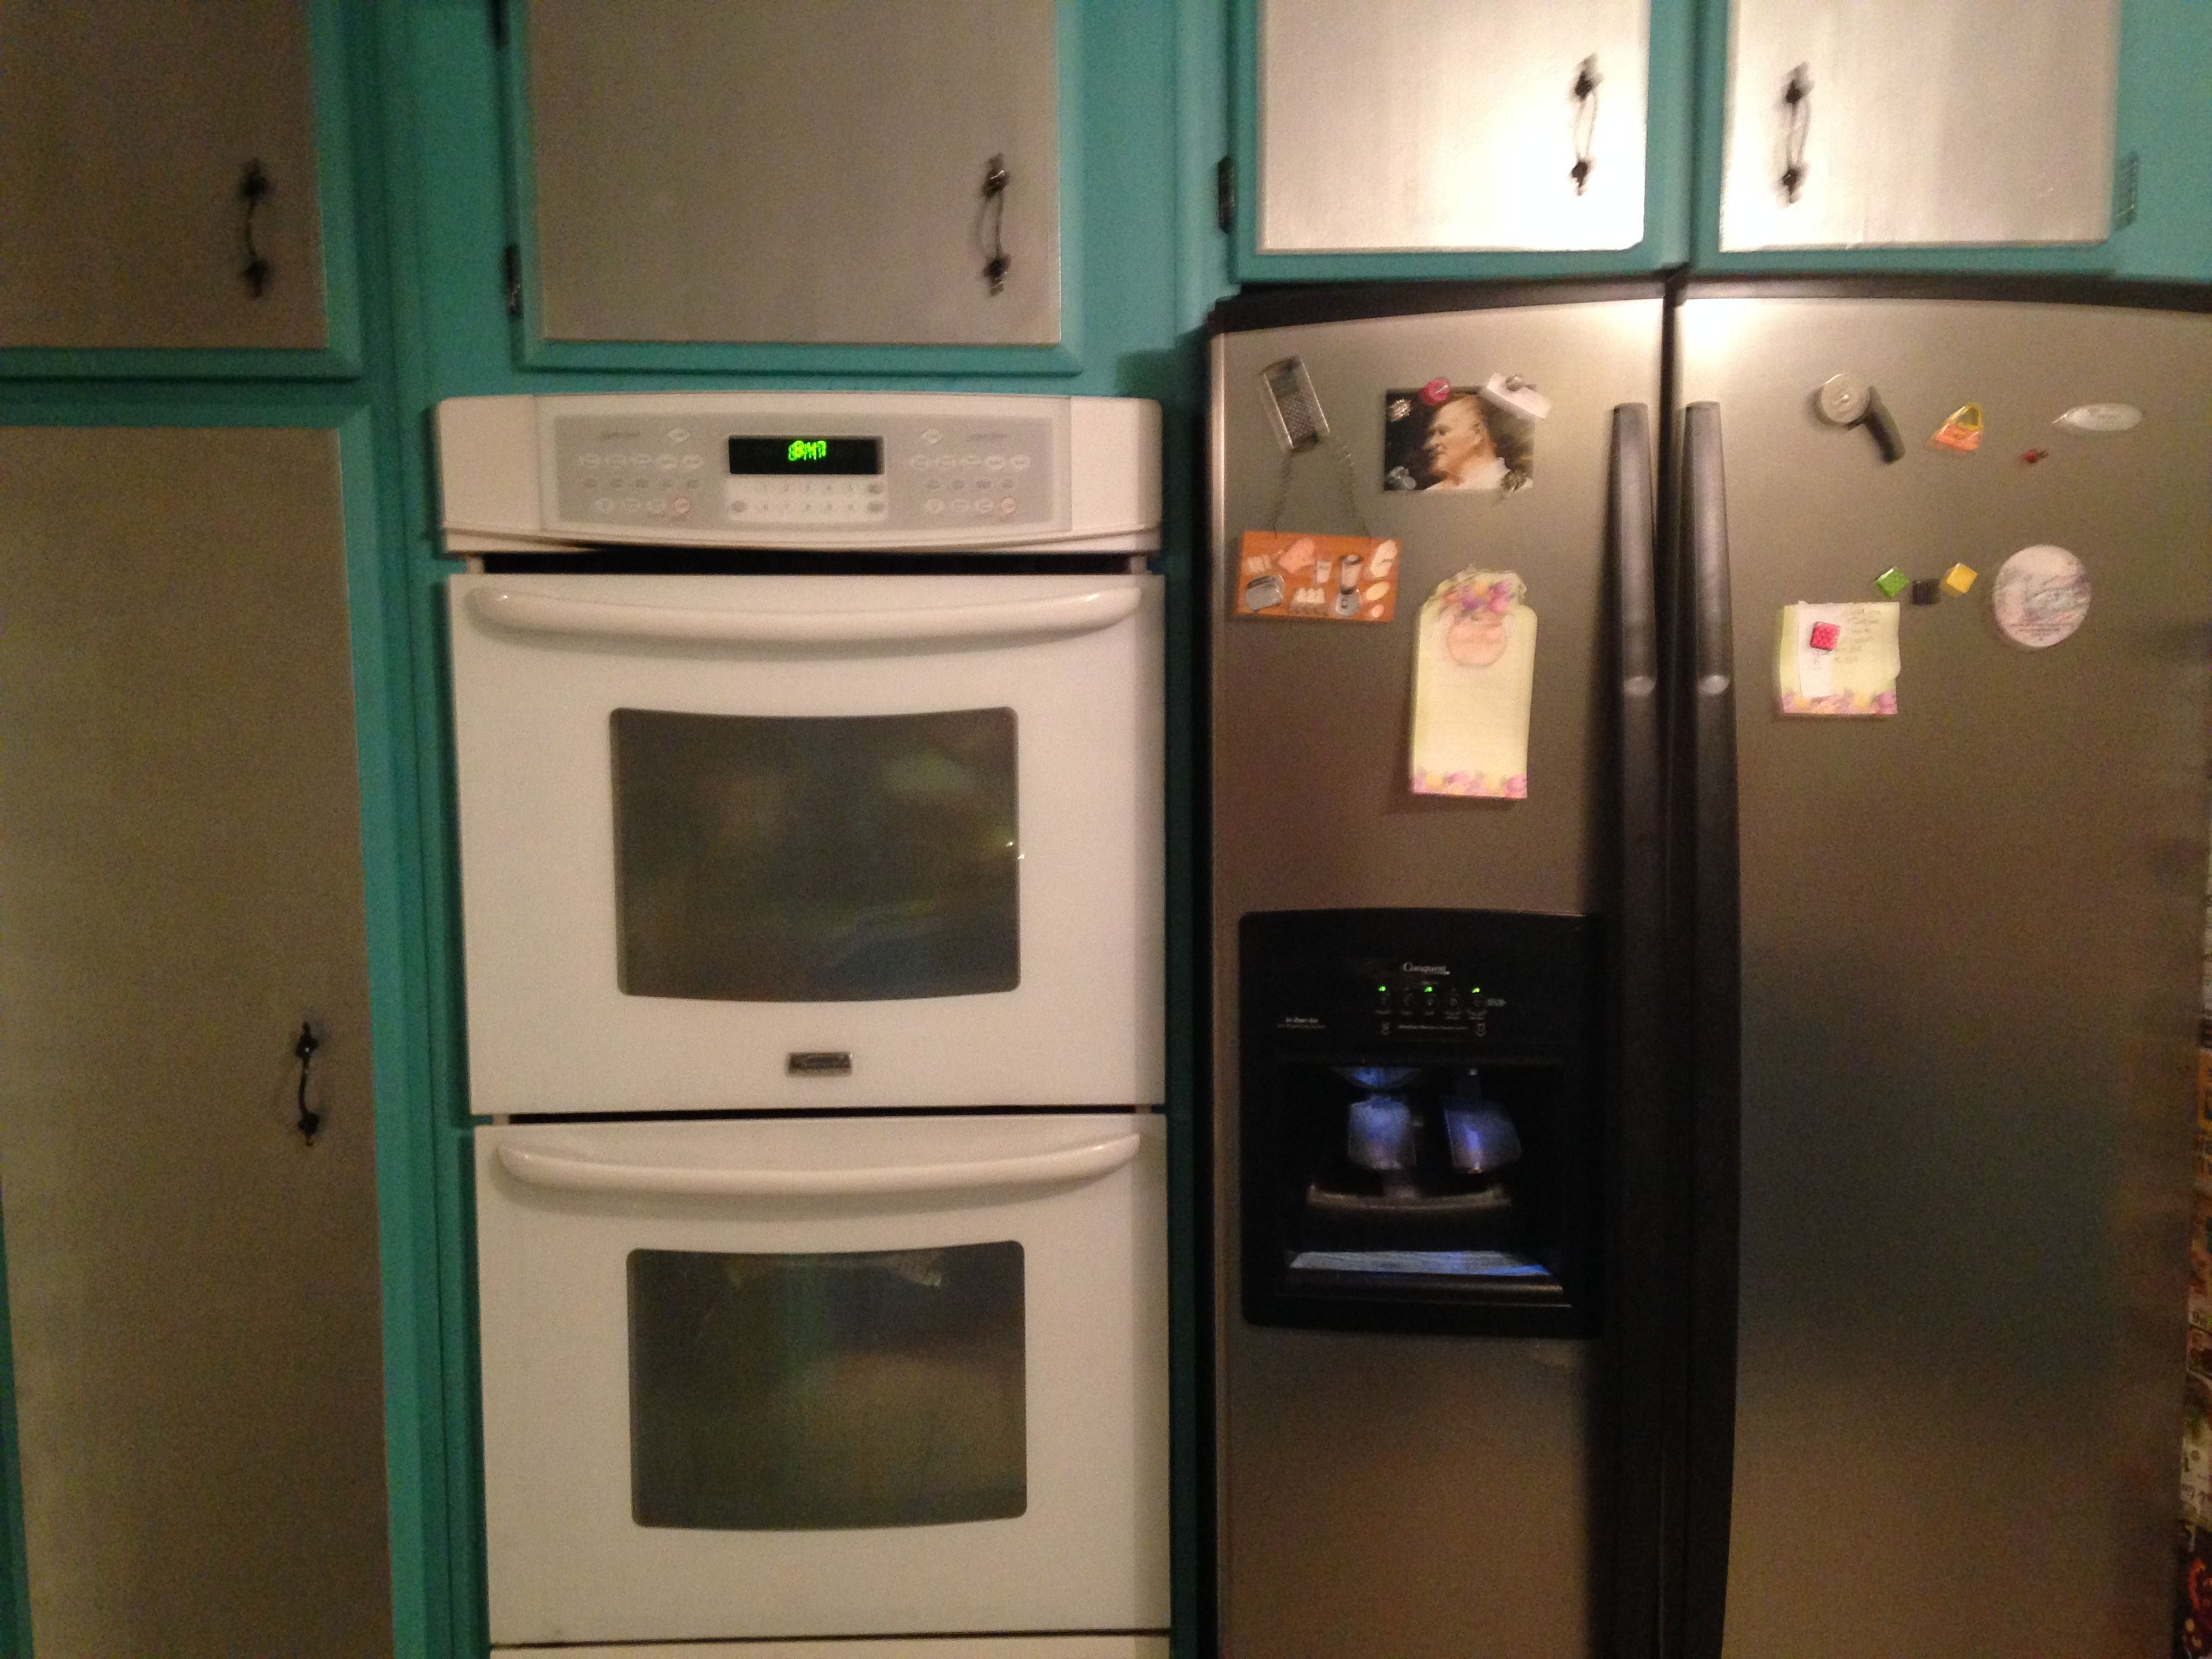 Painted Cabinet Fronts Silver to help the Appliances blend. Rustoleum Metallic Silver